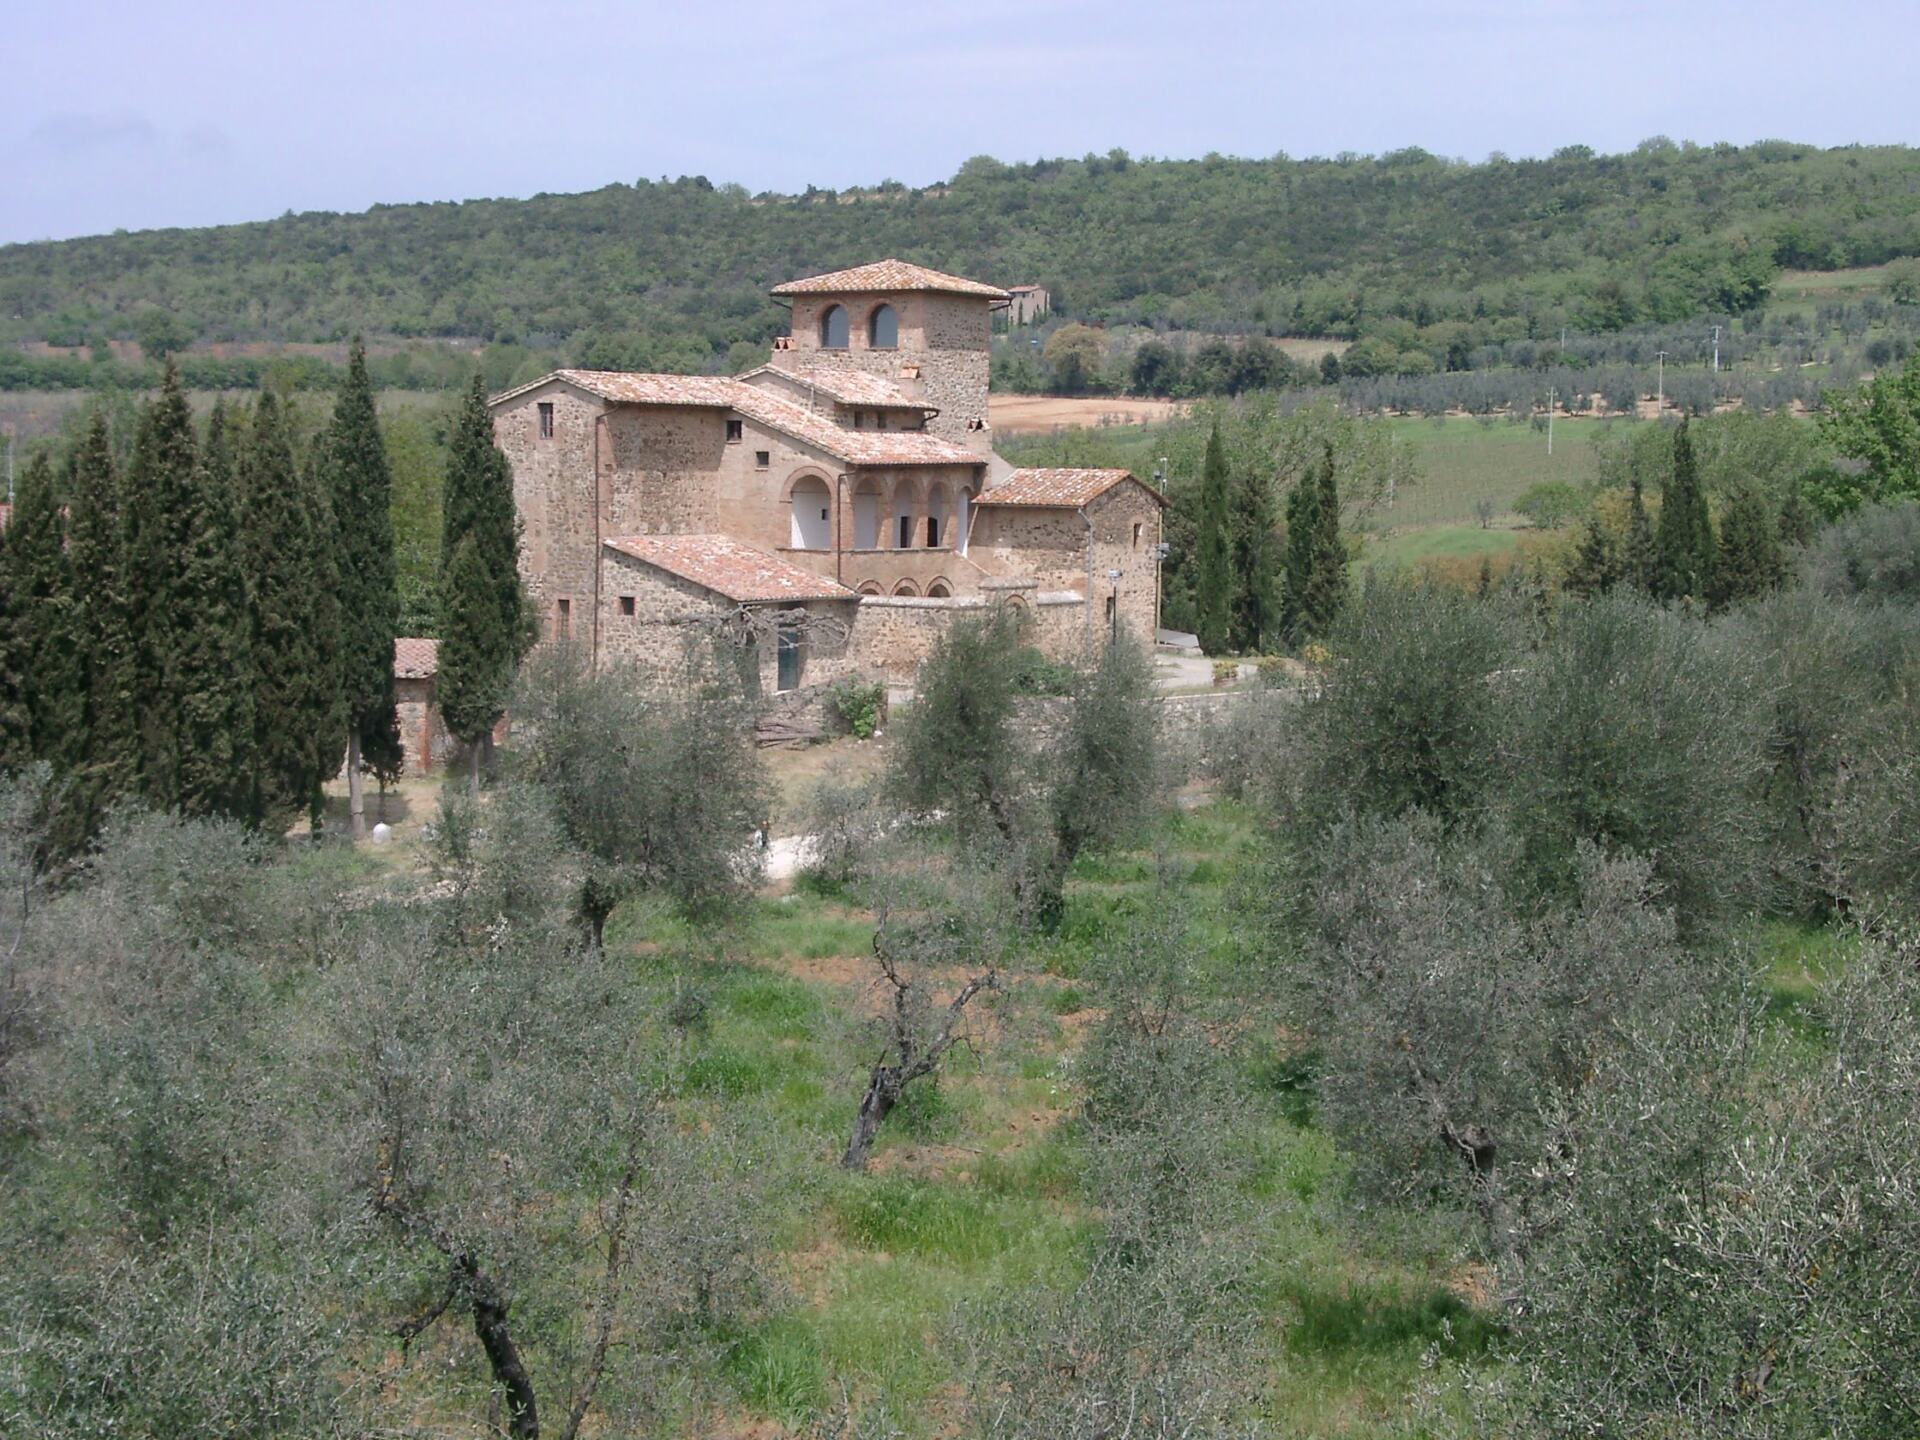 Tuscan farm house winery with olive trees and vineyards